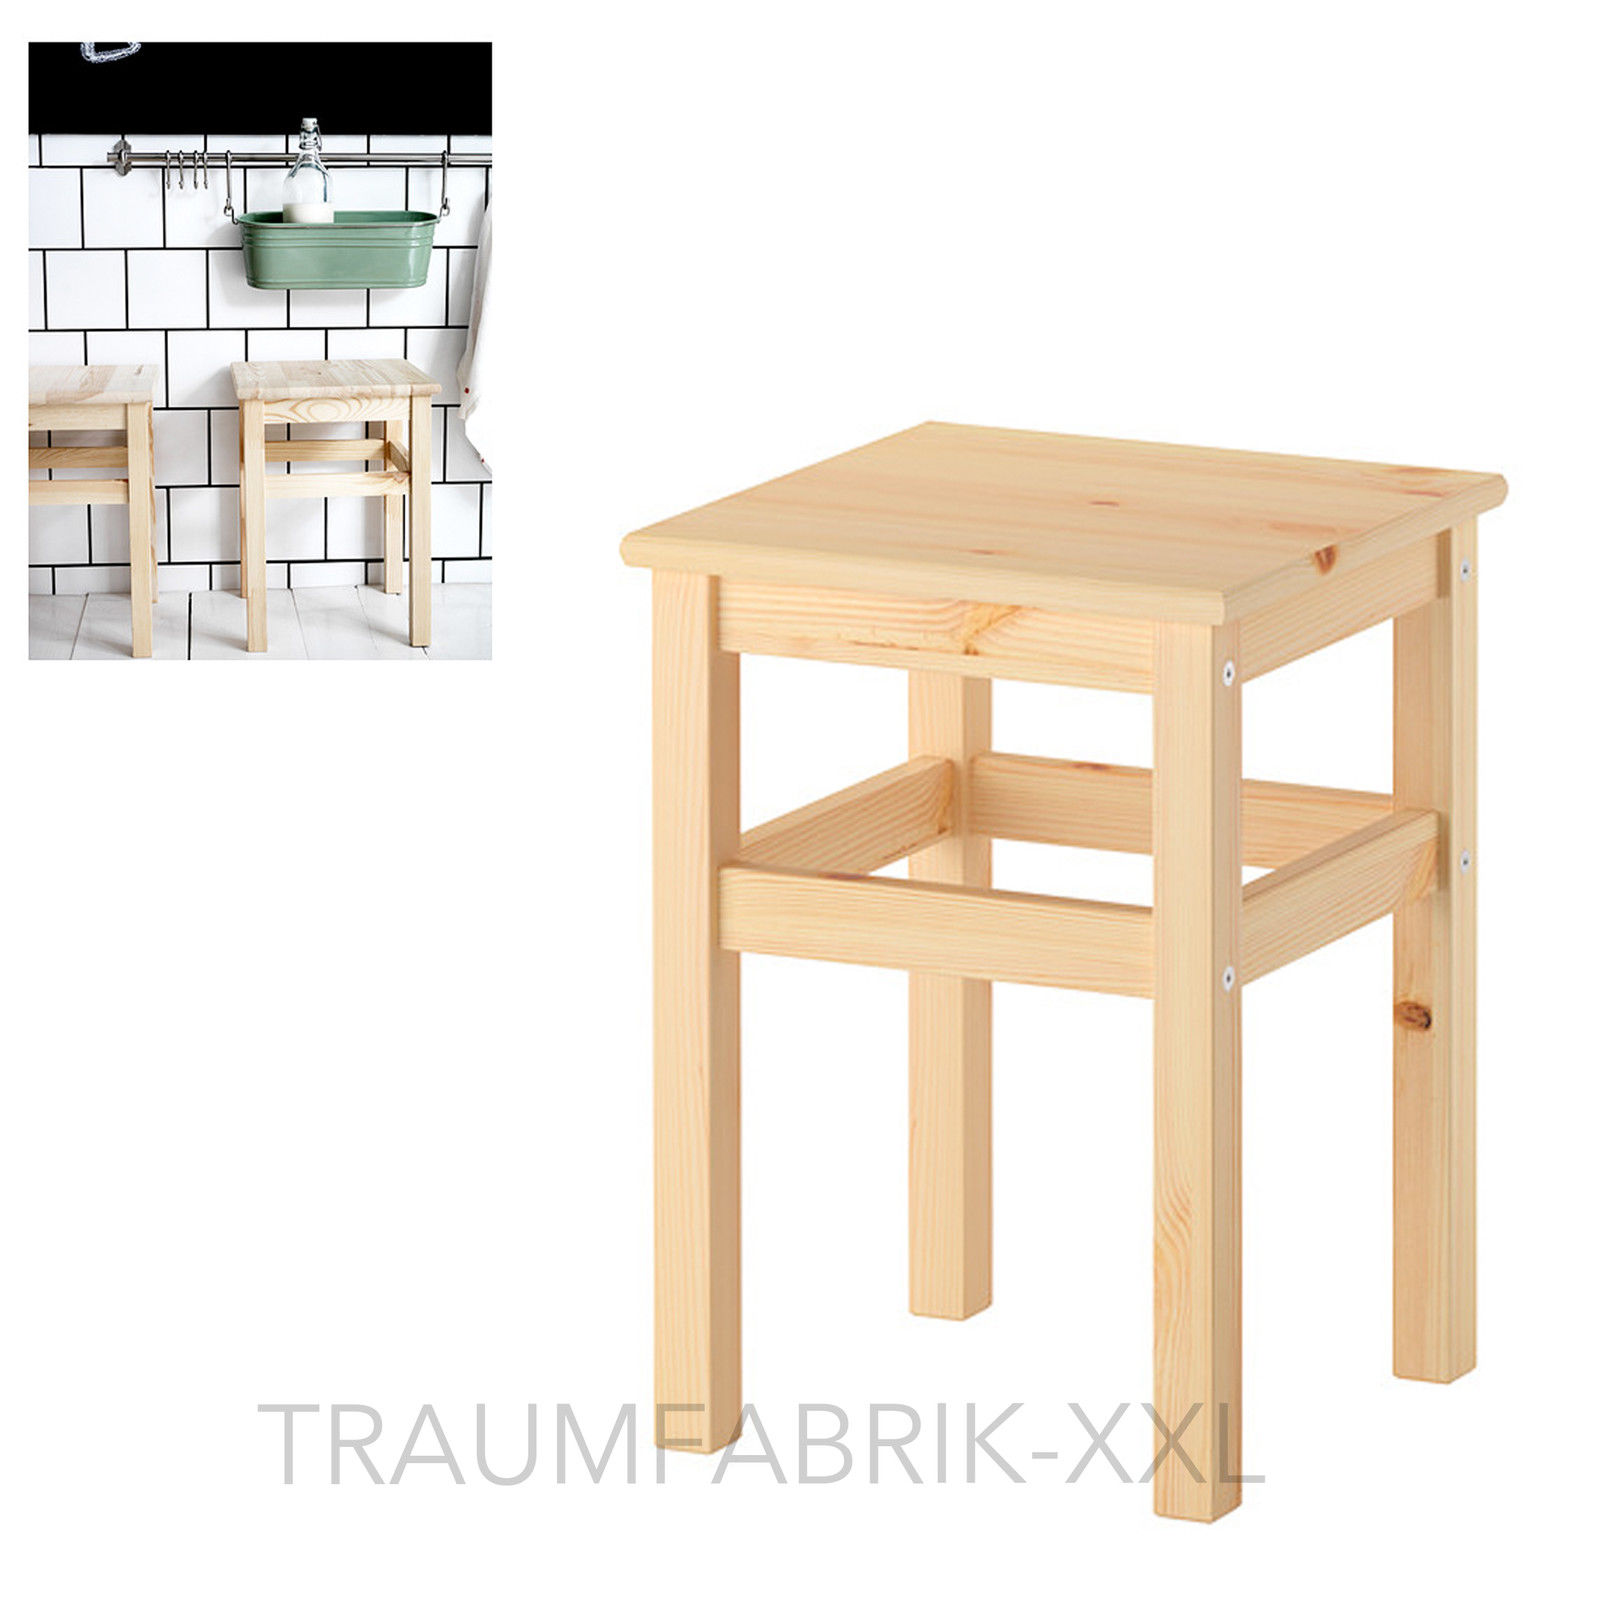 Schemel Hocker Ikea Oddvar Hocker Holzhocker Schemel Holzschemel 33x33x45cm Massive Kiefer Neu